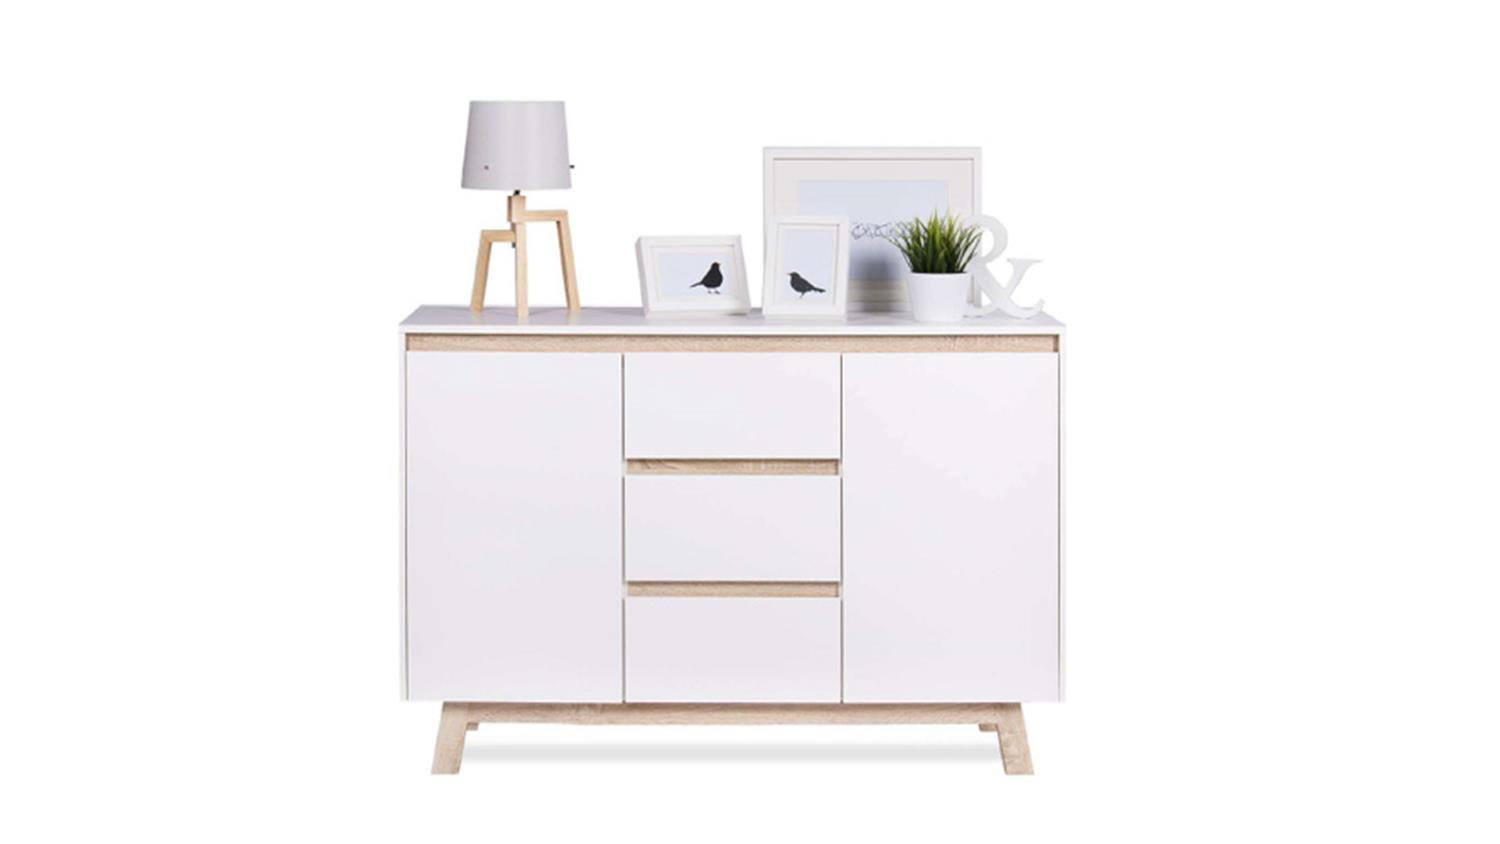 kommode apart 2 sideboard anrichte in wei und sonoma. Black Bedroom Furniture Sets. Home Design Ideas